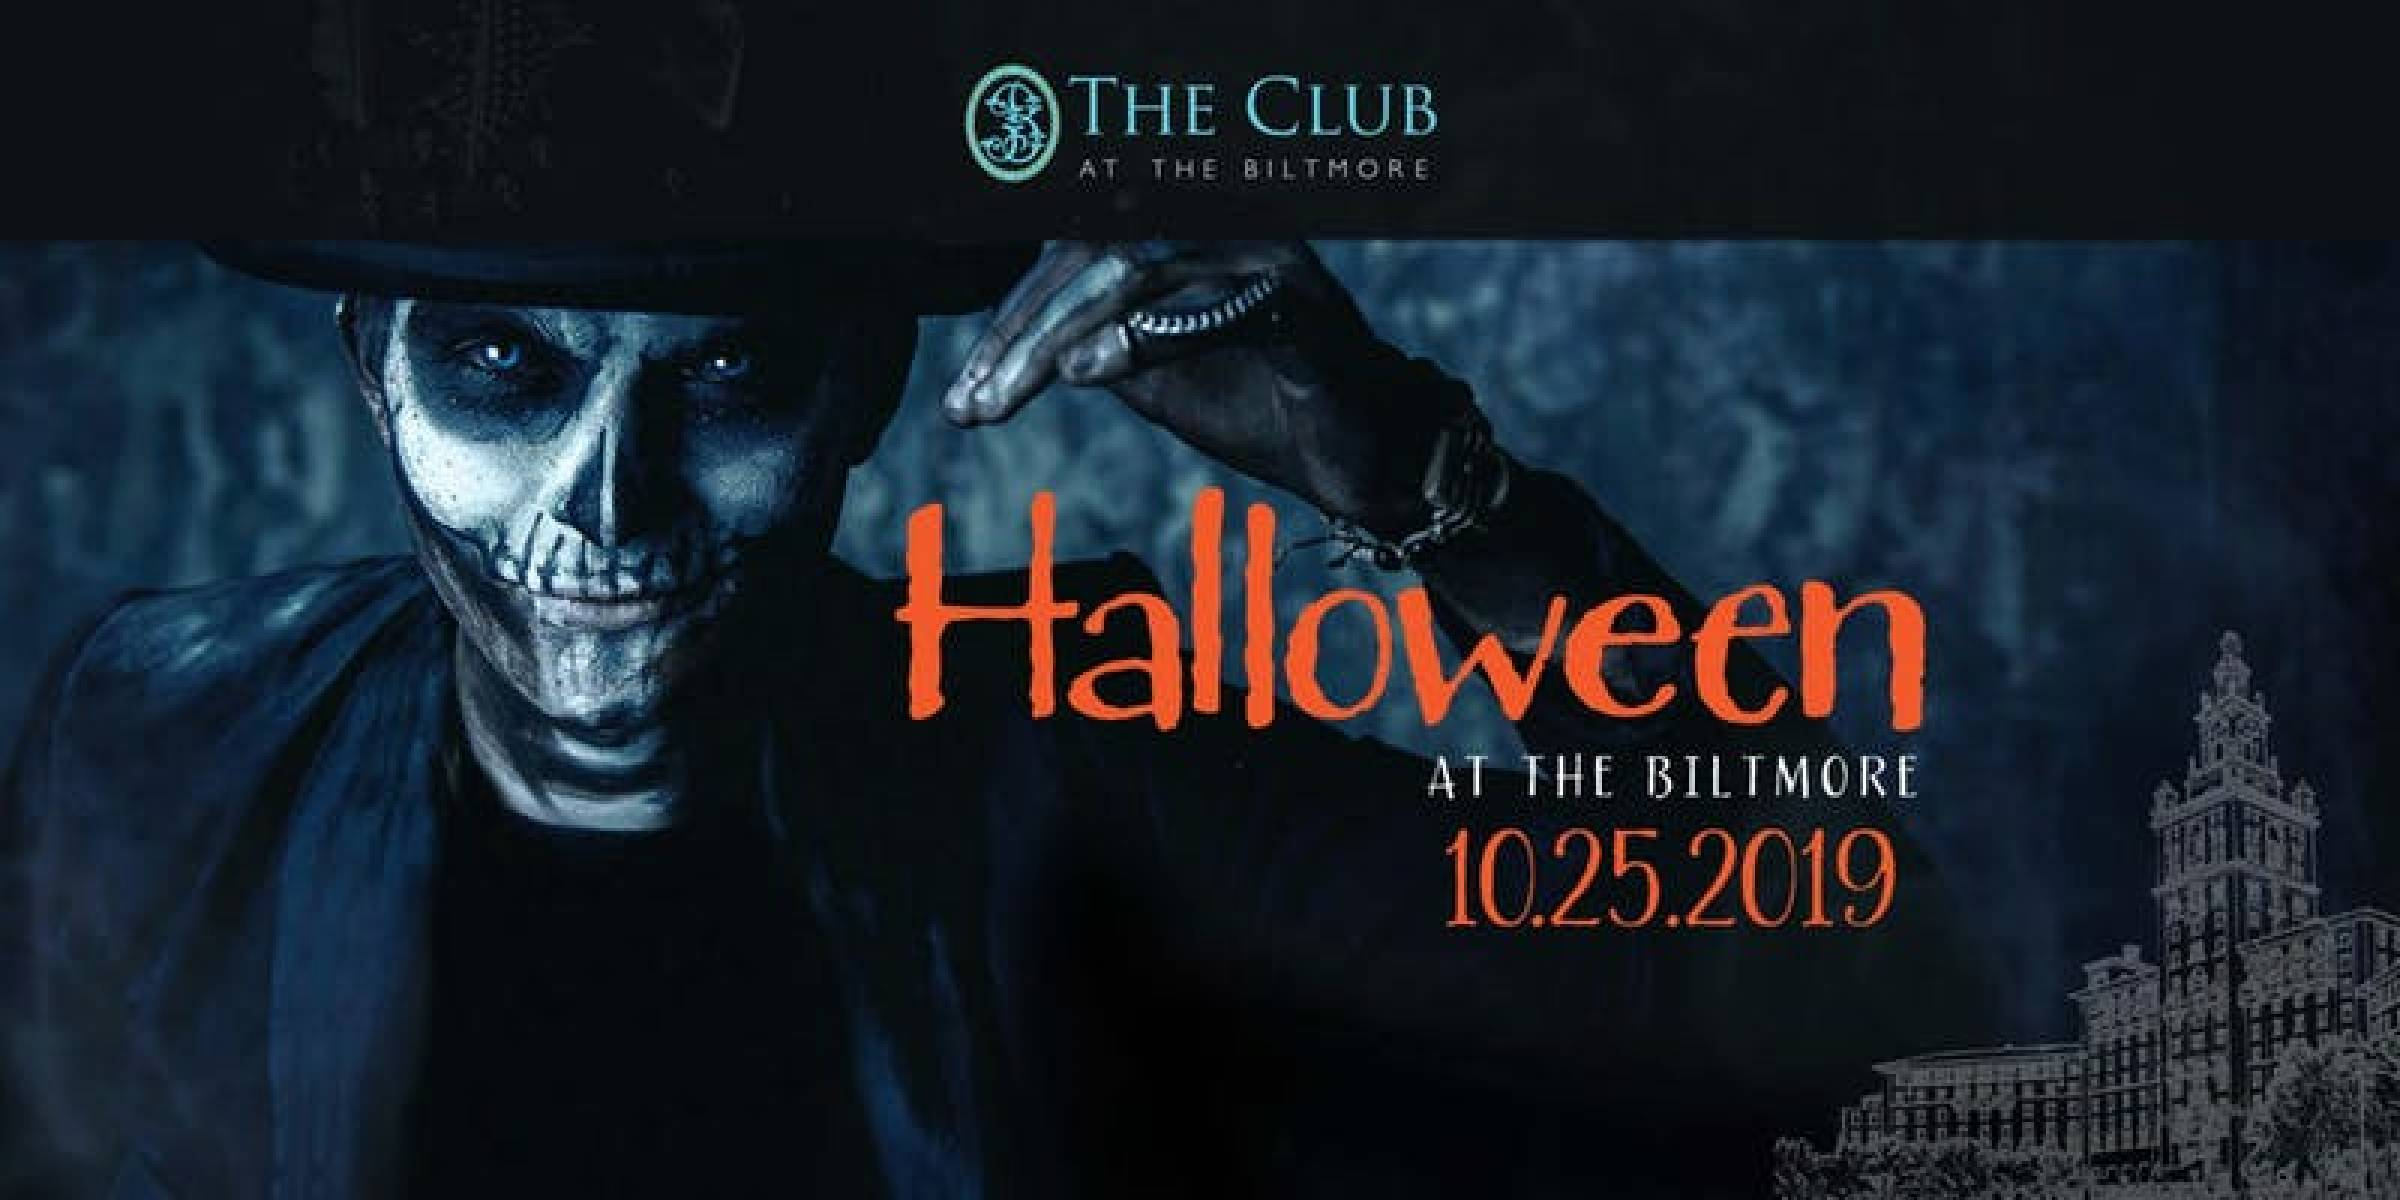 Halloween at the Biltmore